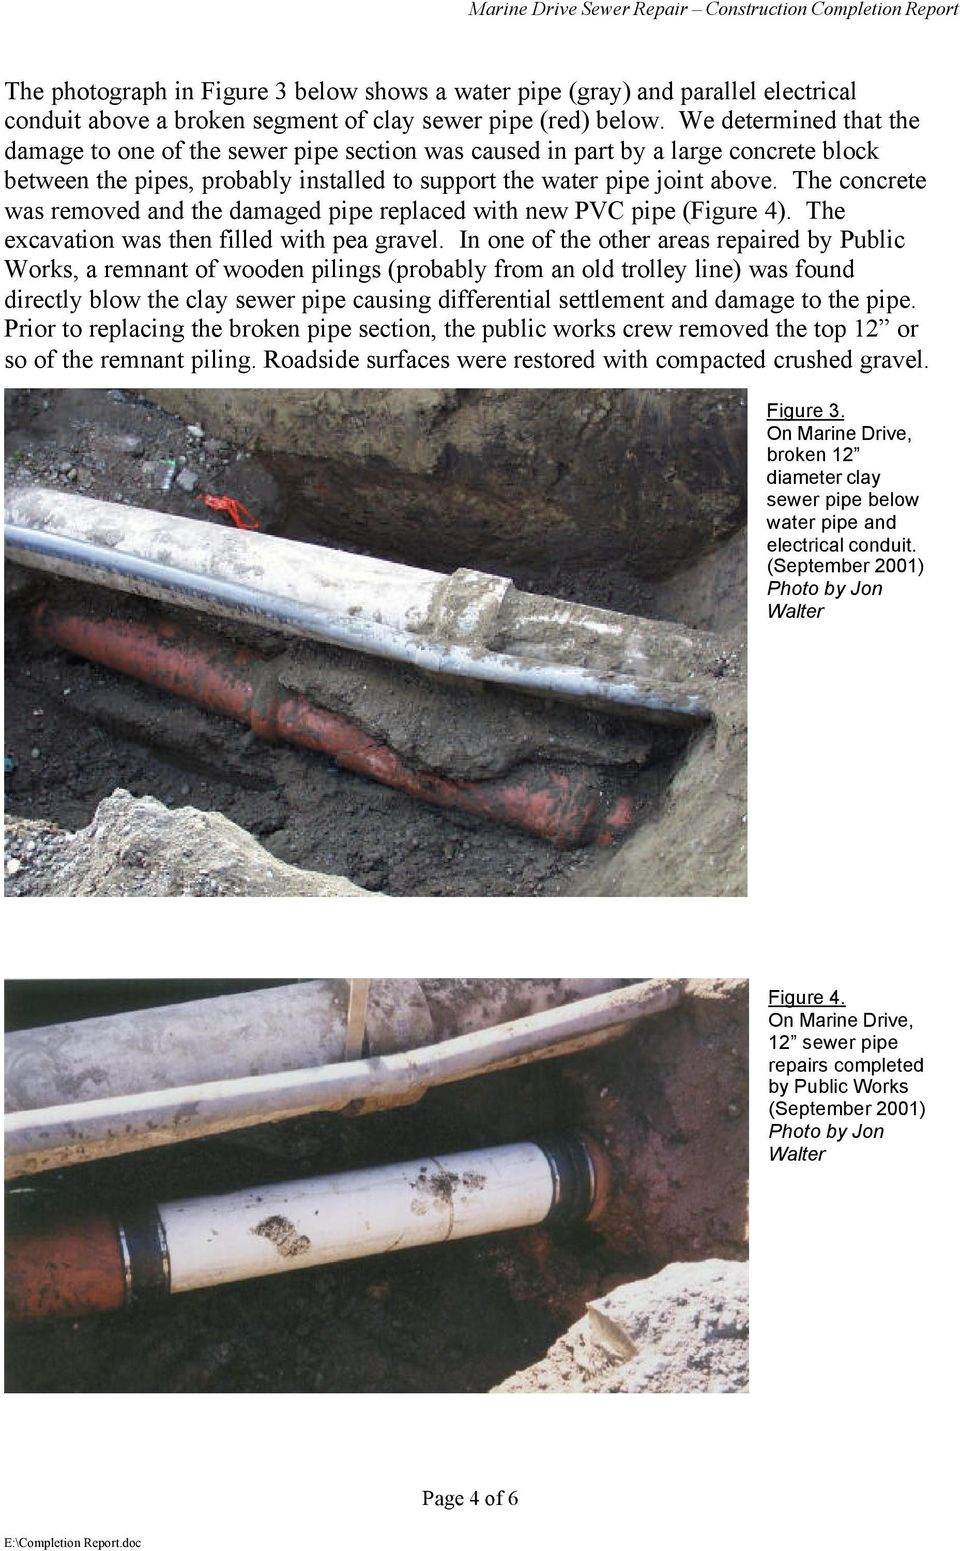 GRAVITY SEWER REPAIR MARINE DRIVE CONSTRUCTION COMPLETION